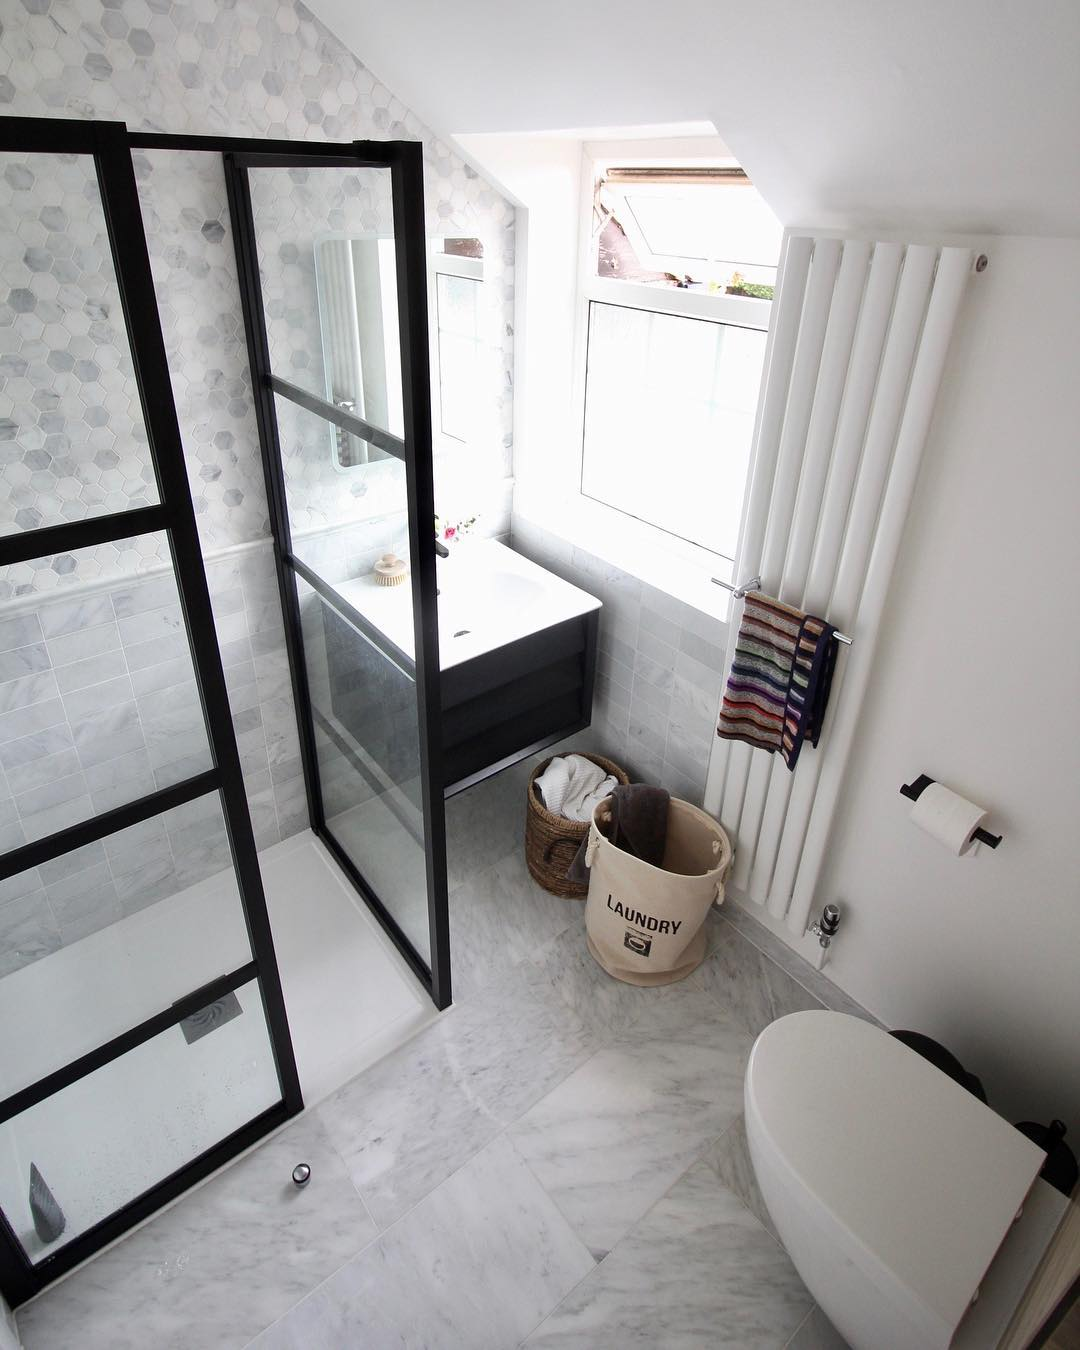 narrow vertical radiator in a small bathroom from above